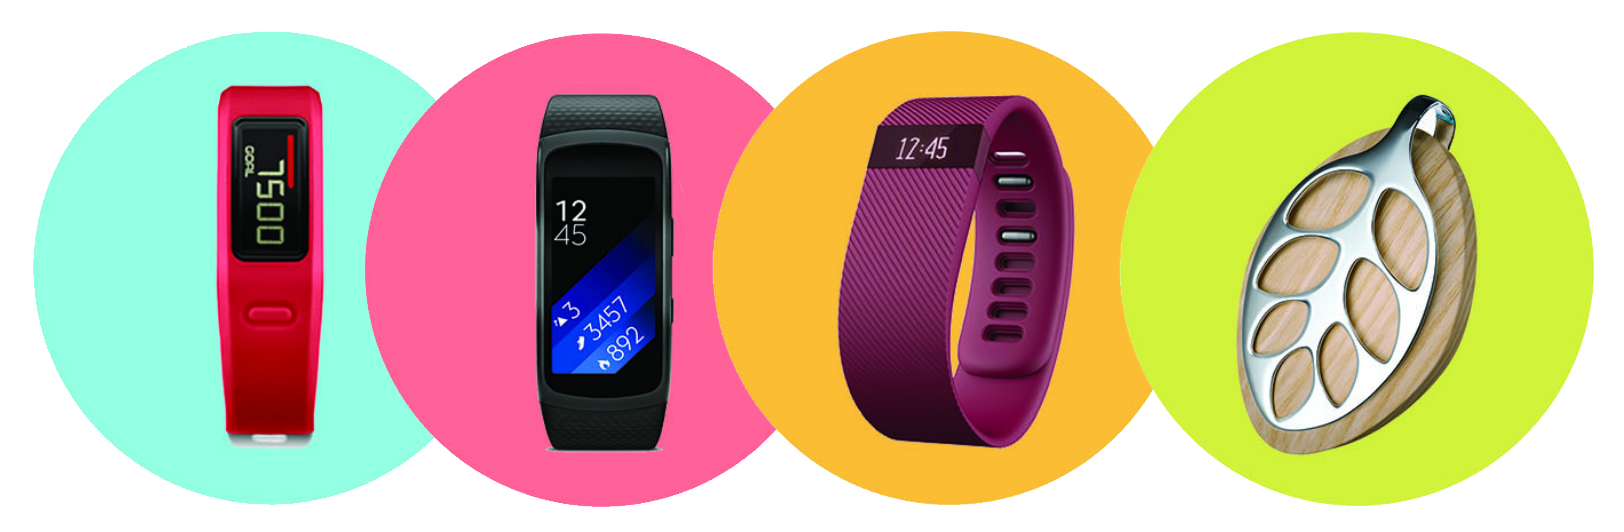 Are all activity trackers created equal?